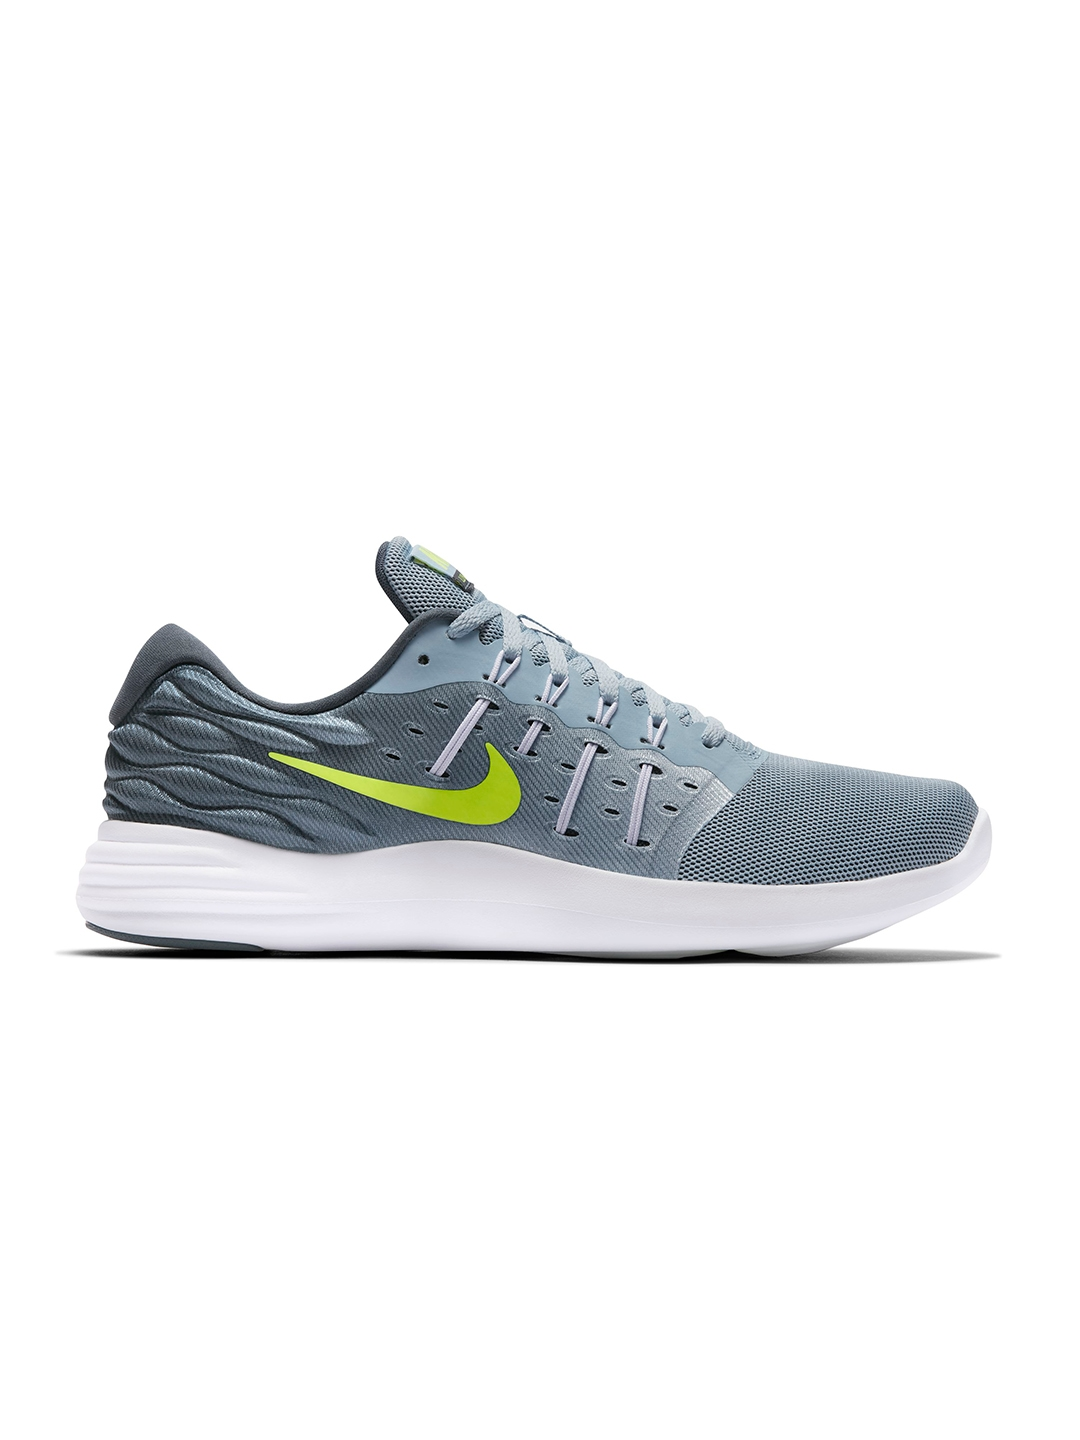 the latest fae17 95dbf Buy Nike Men Grey Lunarstelos Running Shoes - Sports Shoes for Men ...